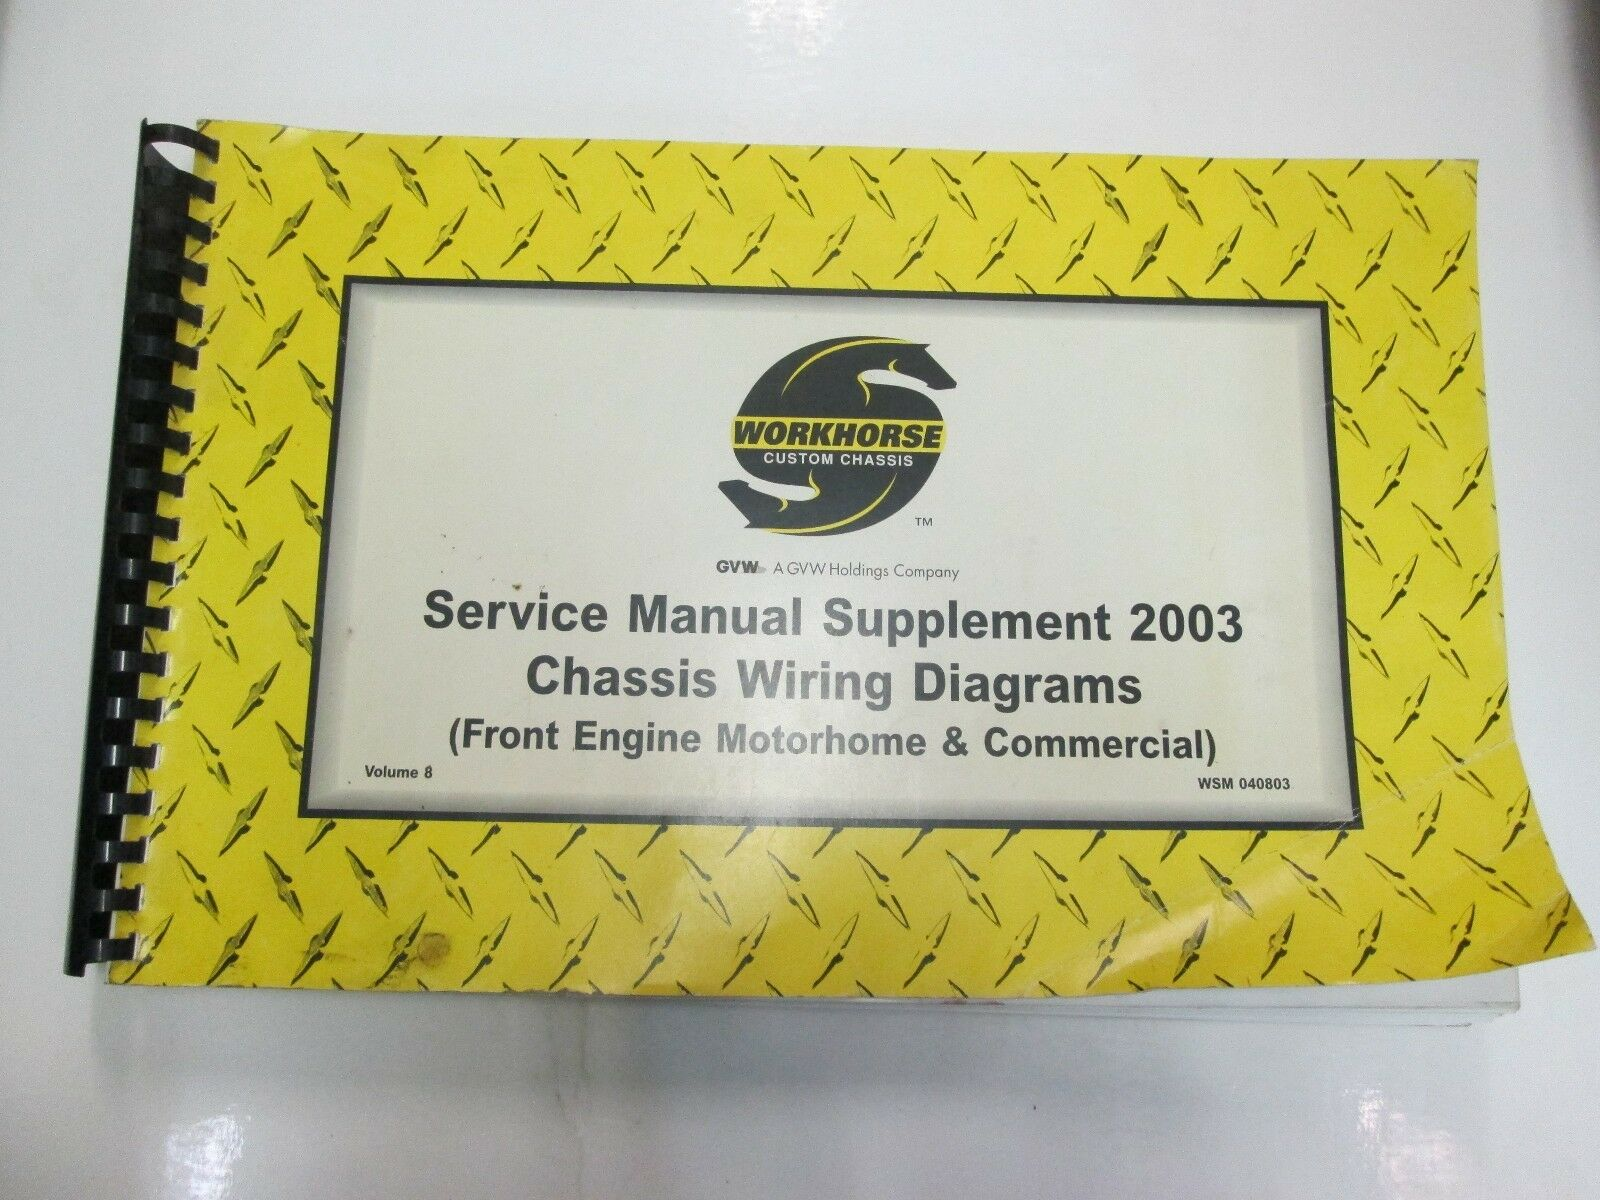 Workhorse Custom Chassis Service Manual Supplement Chassis Wiring Diagrams  VOL 8 | eBay